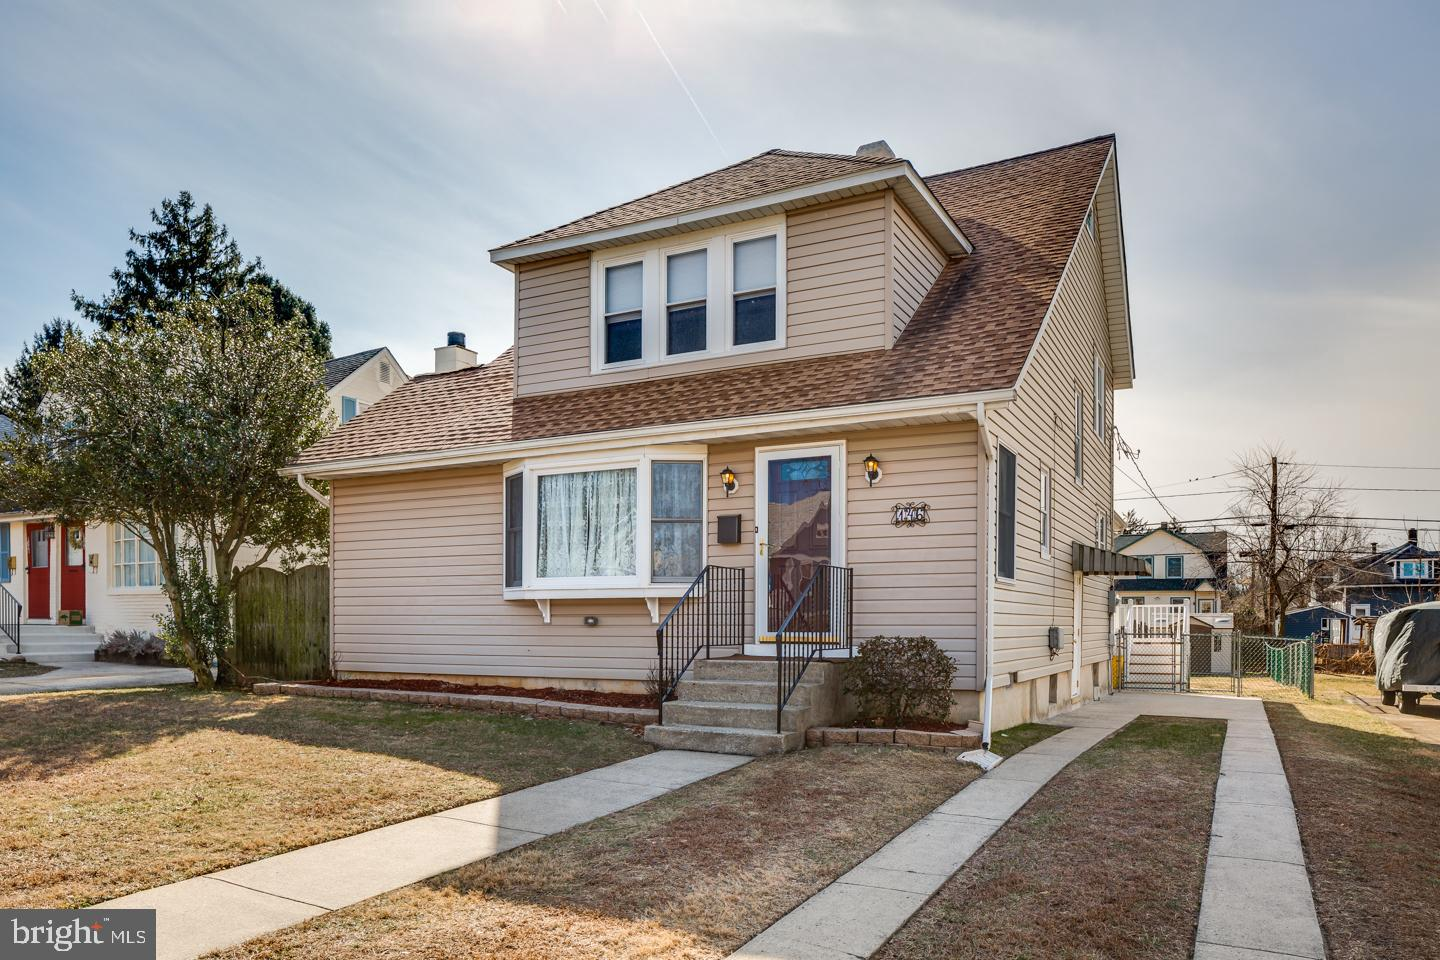 146 S HAVILAND AVENUE, AUDUBON, NJ 08106